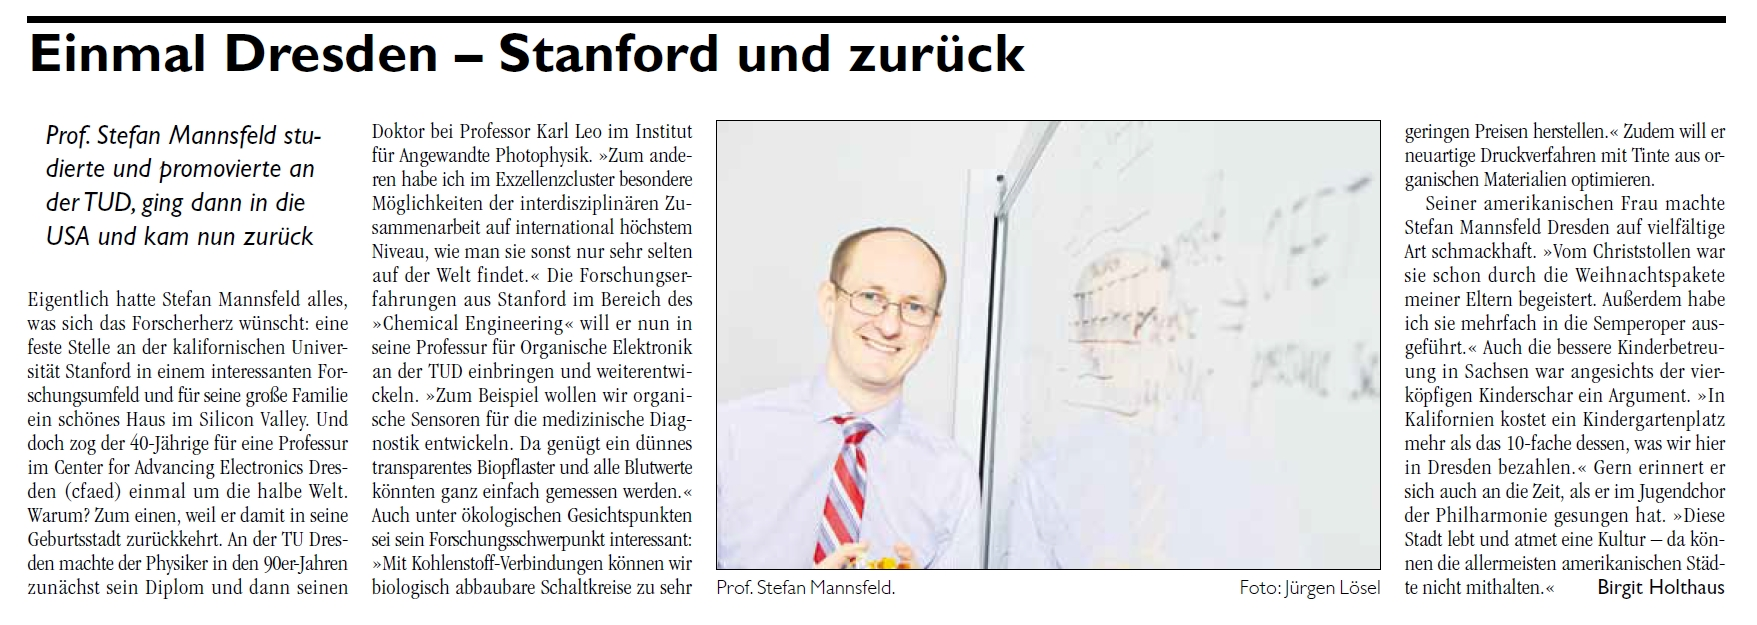 article prof. mannsfeld